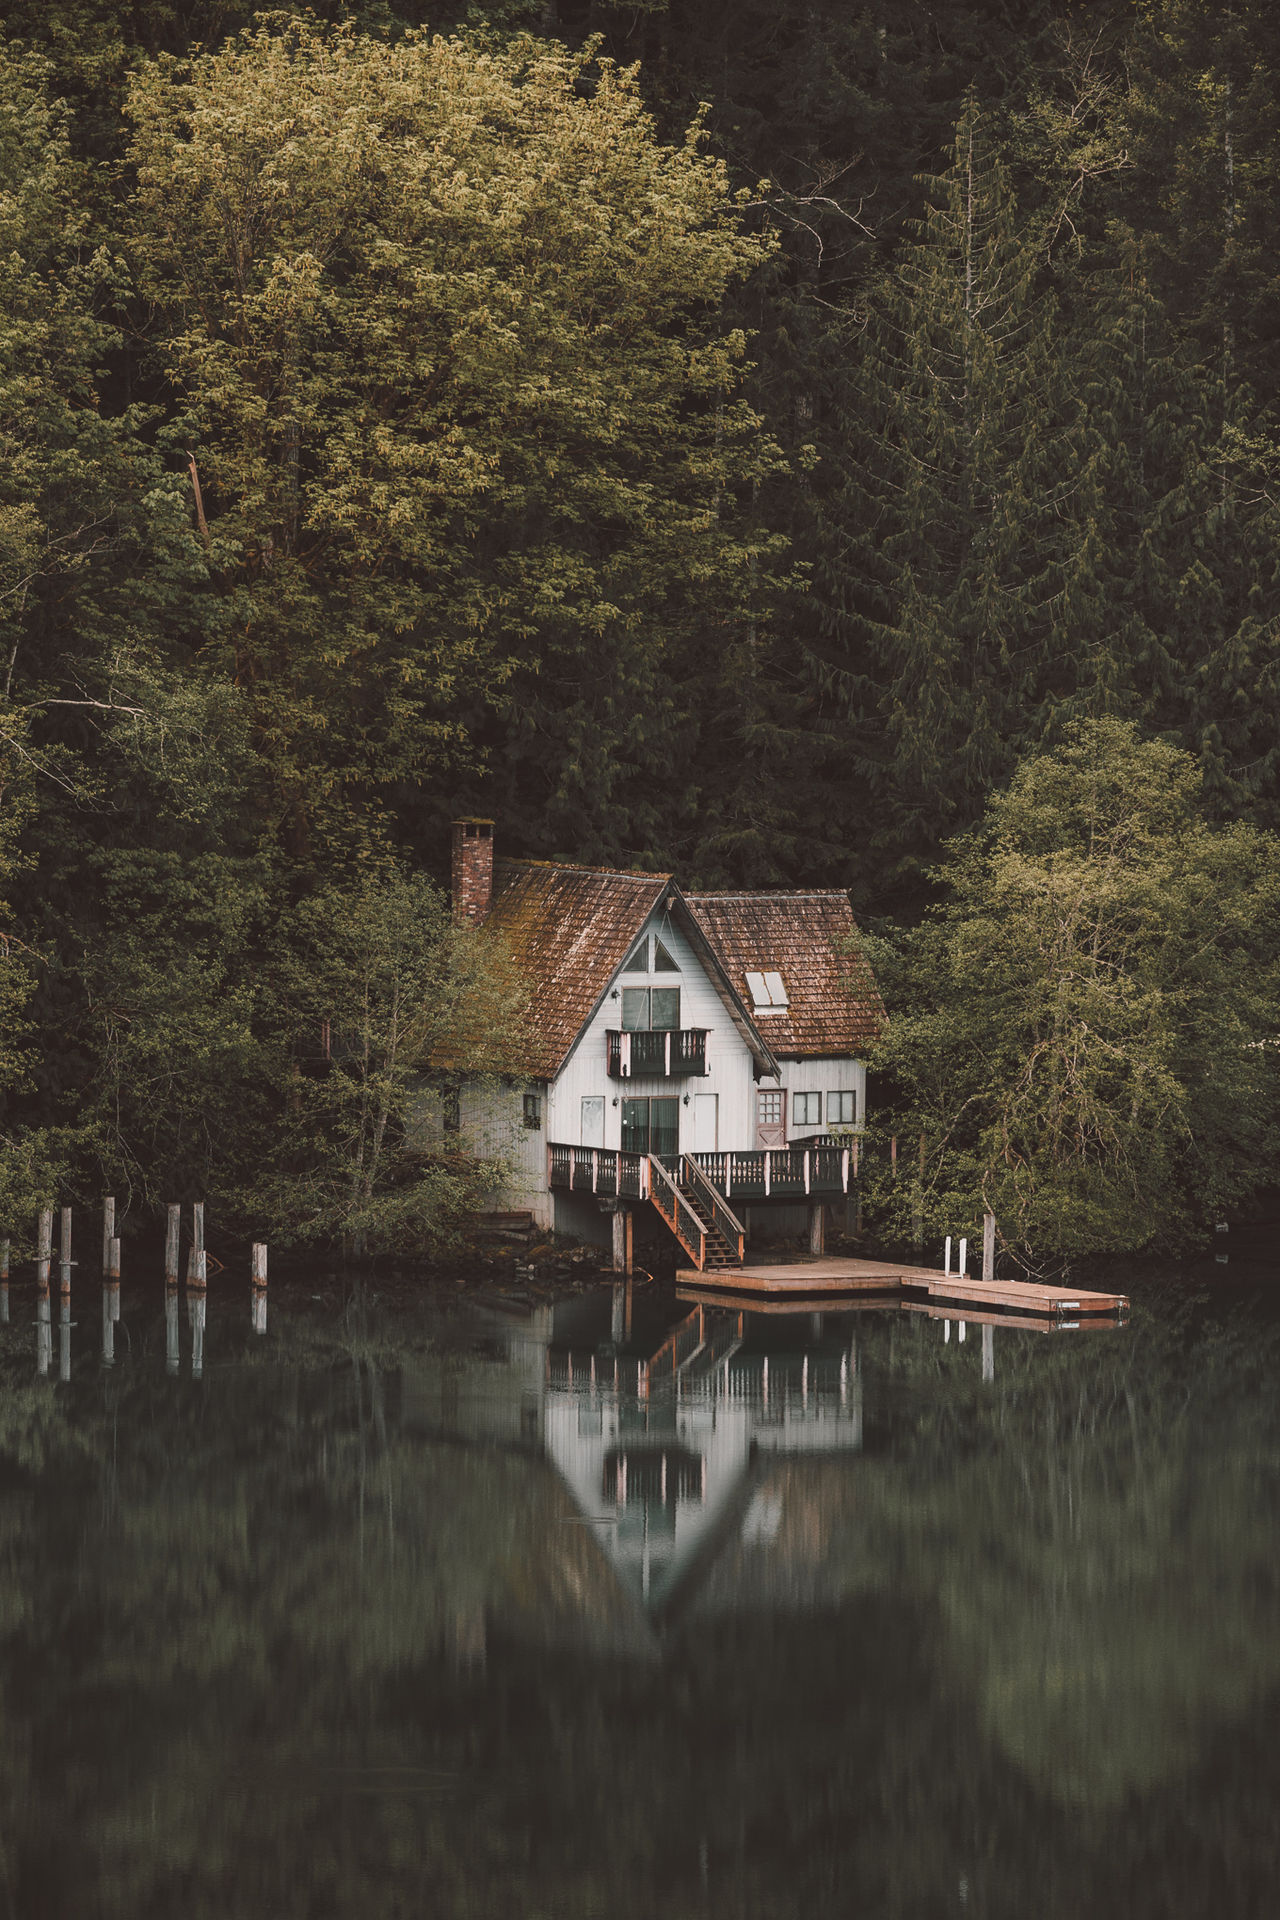 Lakeside Cabin Architecture Beauty In Nature Built Structure Cabin Cat Green Color Landscape Nature Olympic National Park Outdoors PNW Reflection Scenics Tranquil Scene